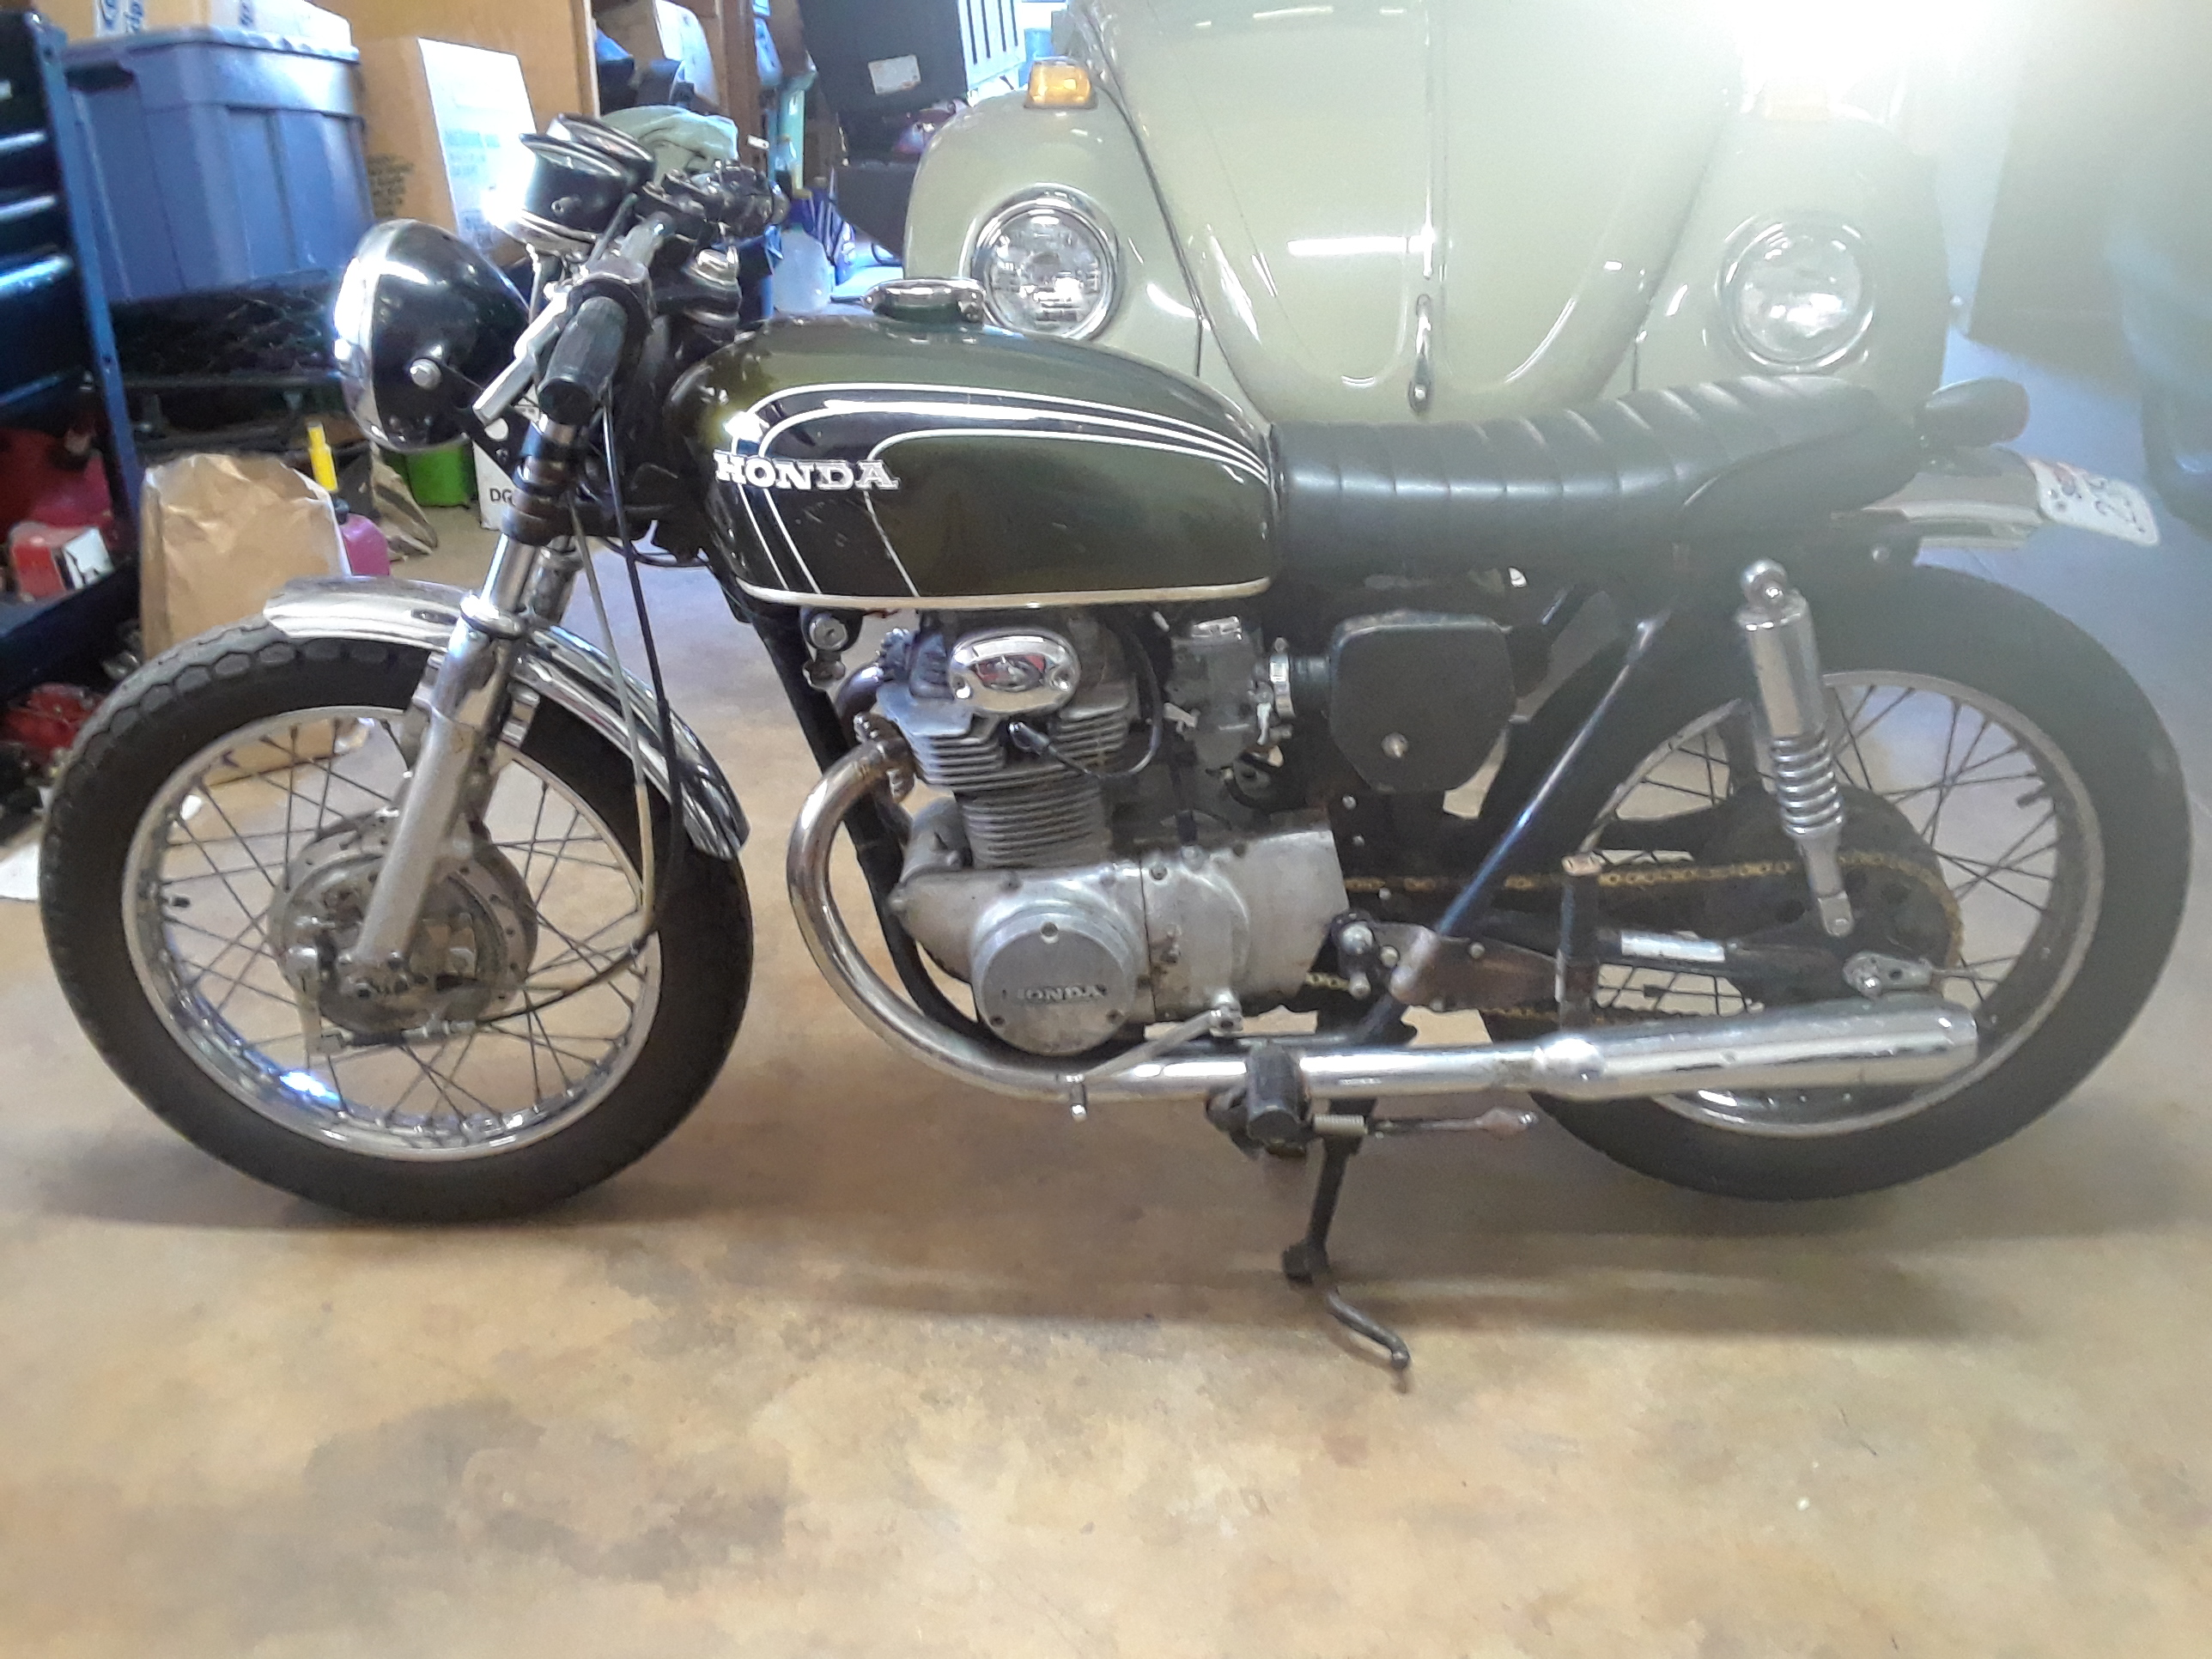 '73 CB350 rear wheel install question-20181106_160634.jpg